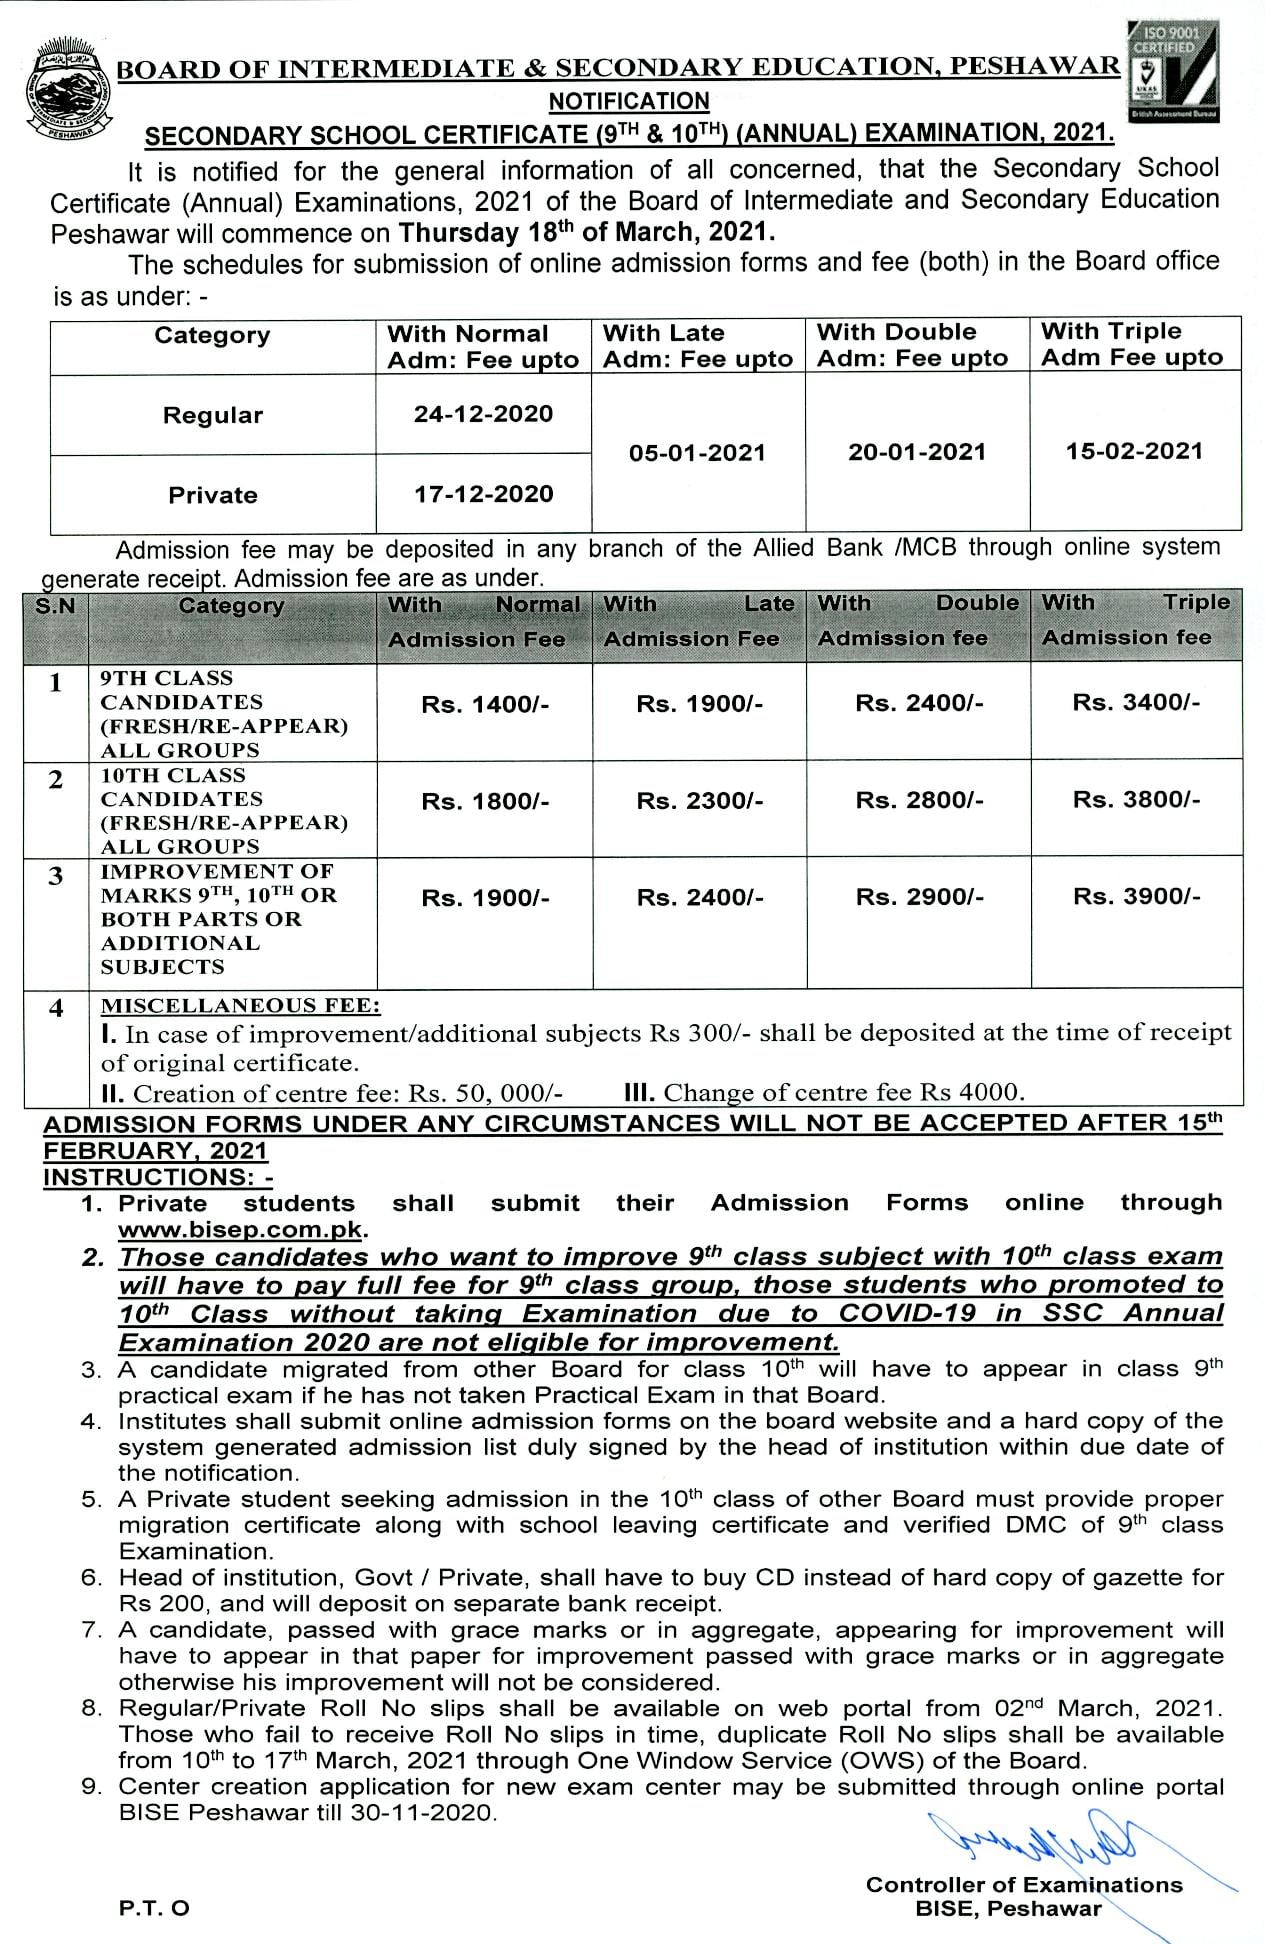 BISE Peshawar Online Submission of Admission Forms SSC Annual Exams 2021